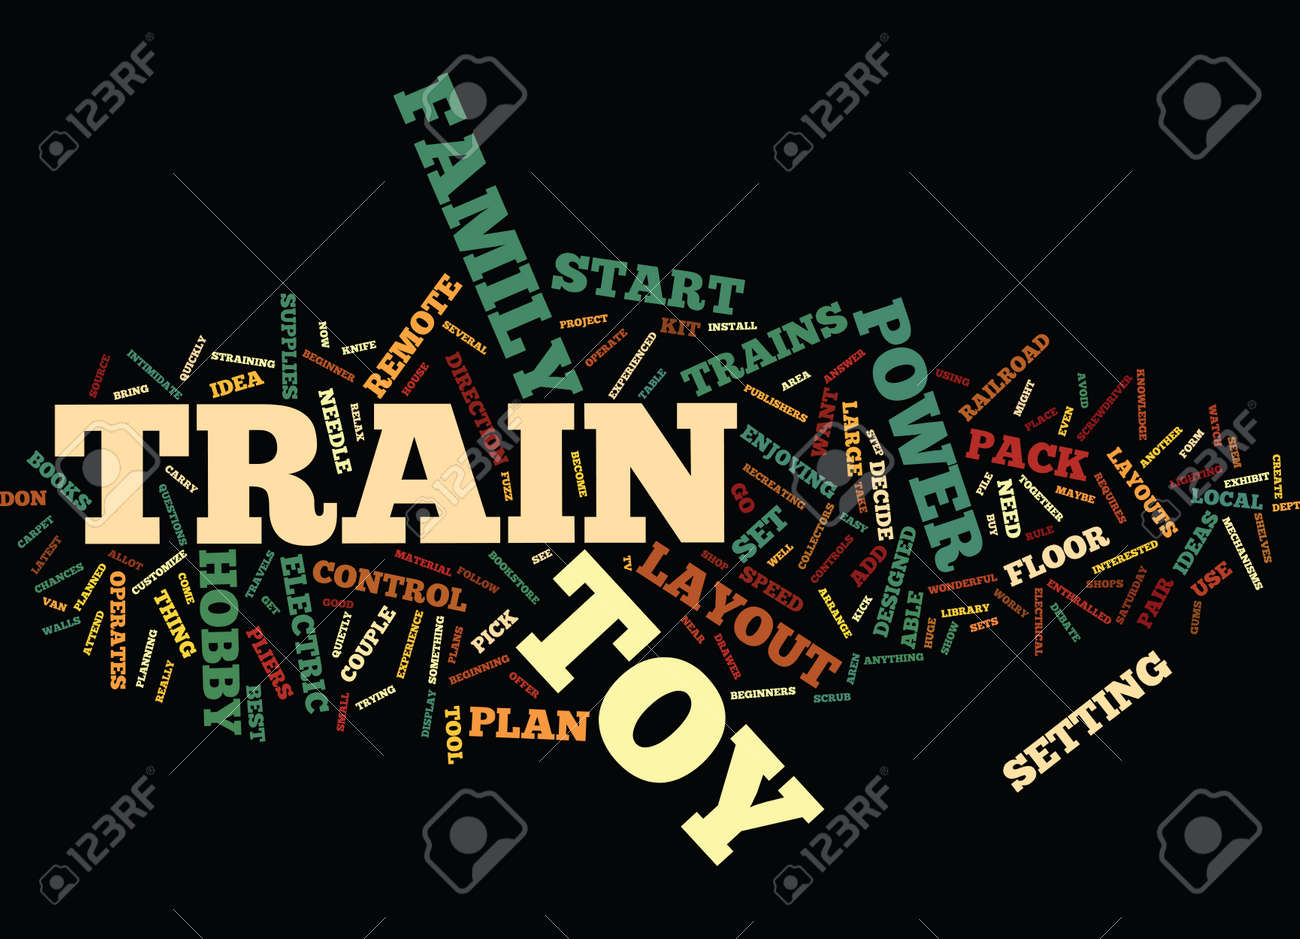 ELECTRIC TOY TRAINS Text Background Word Cloud Concept - 82598765